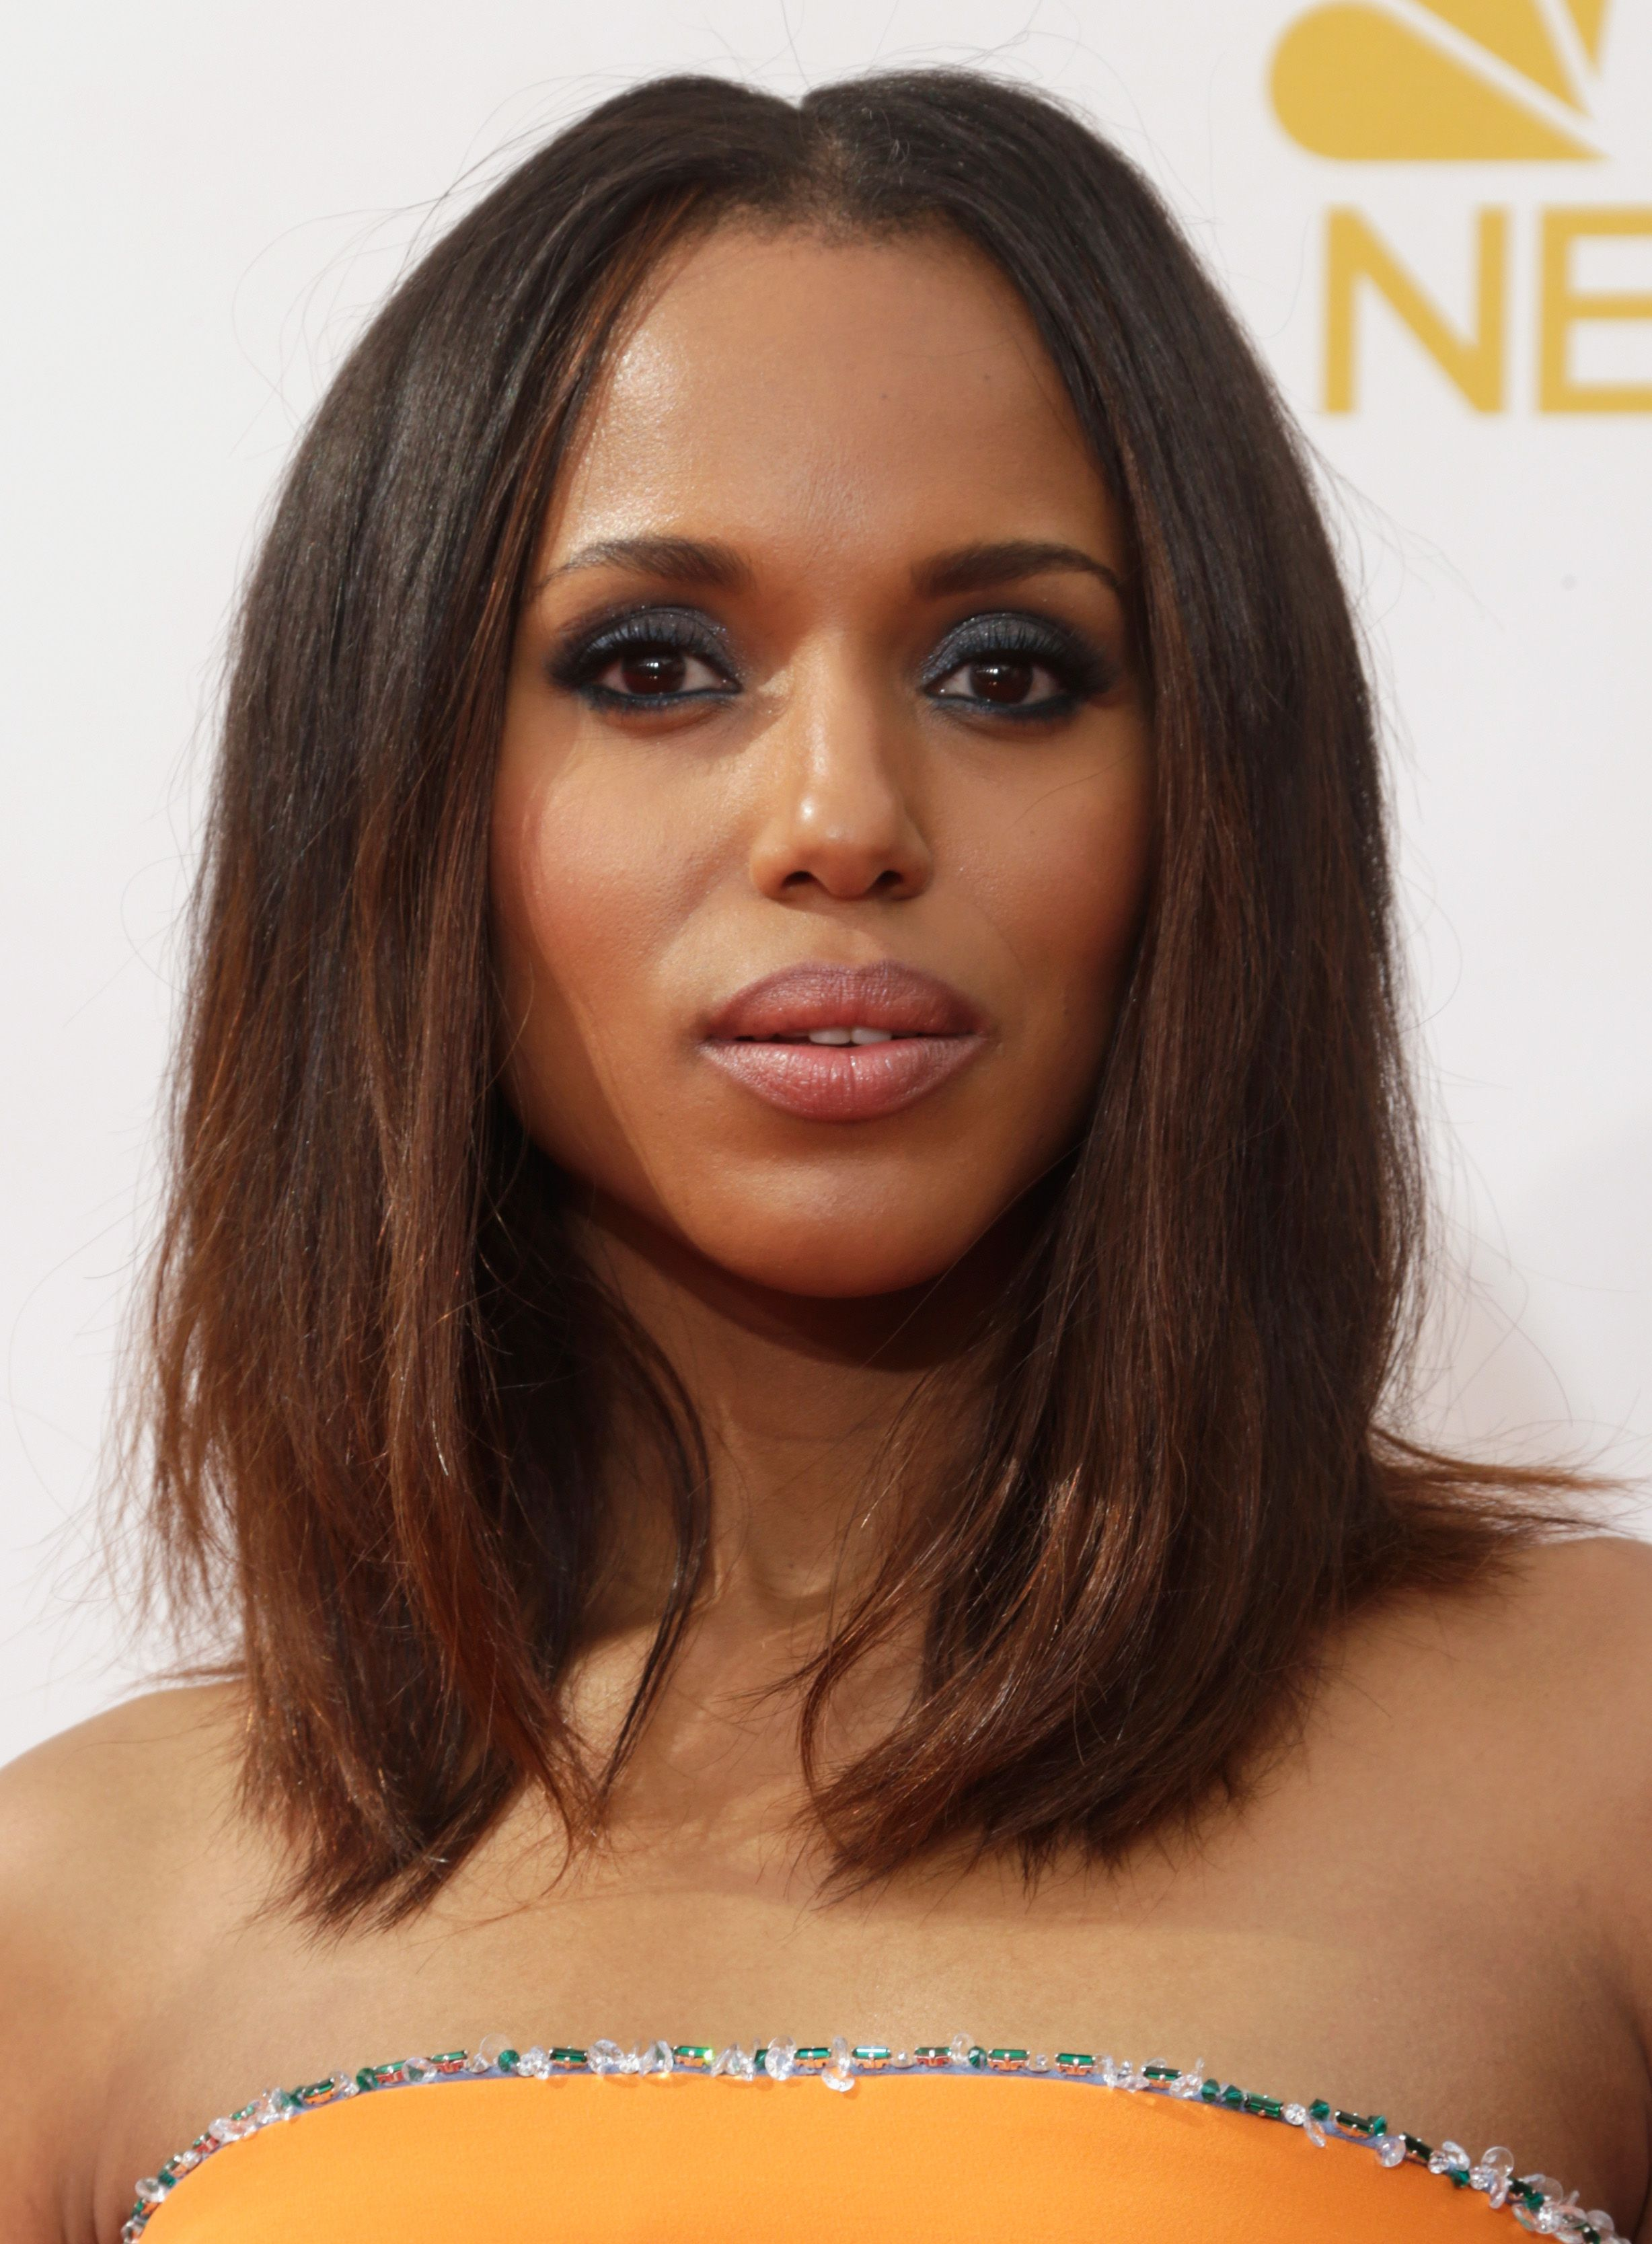 Kerry washington pussy lips